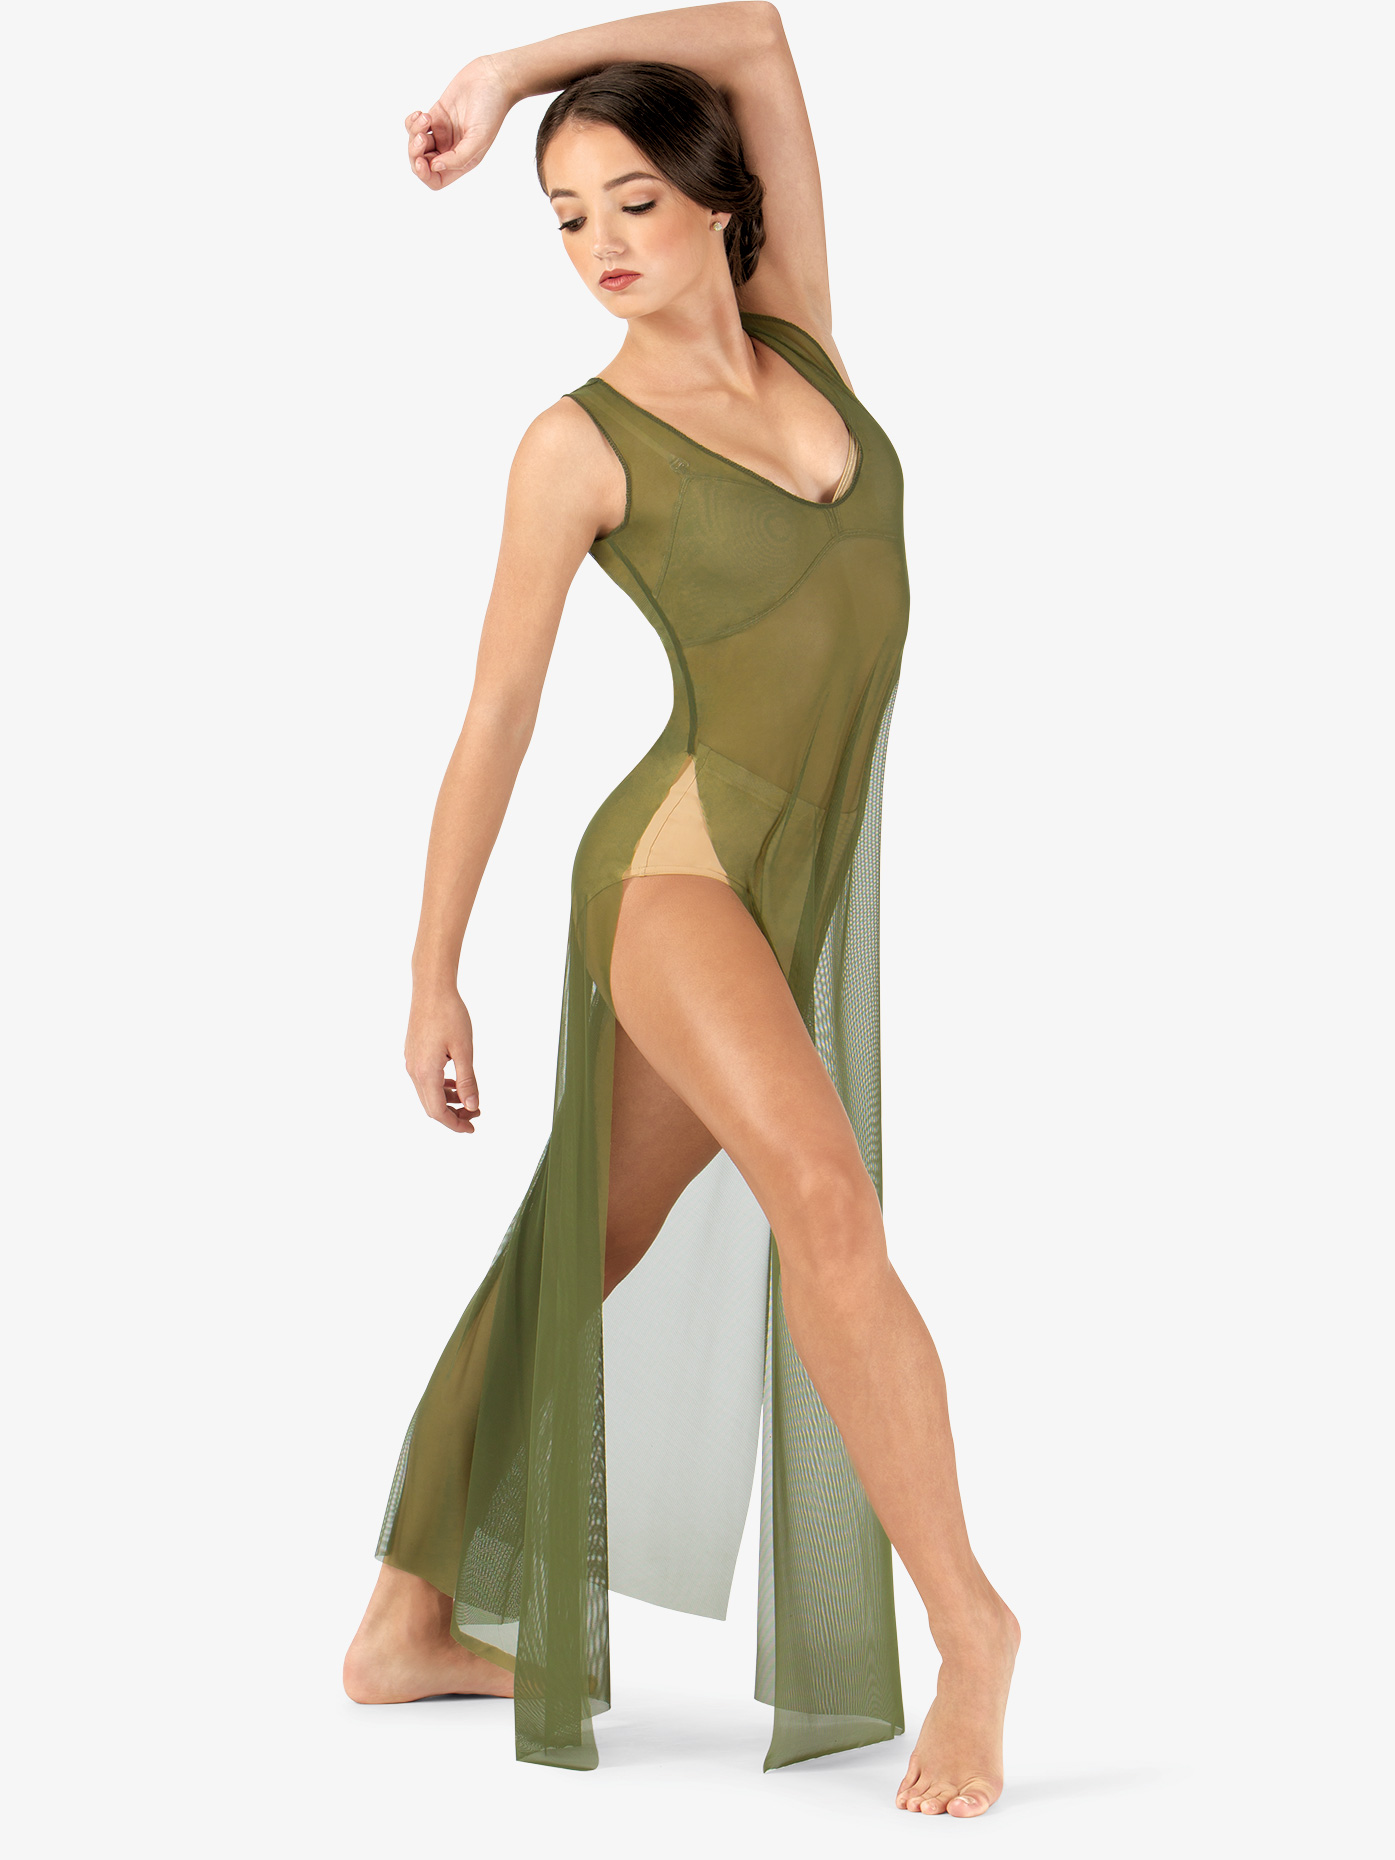 Double Platinum Adult Long V-Neck Mesh Tank Lyrical Dress N7603